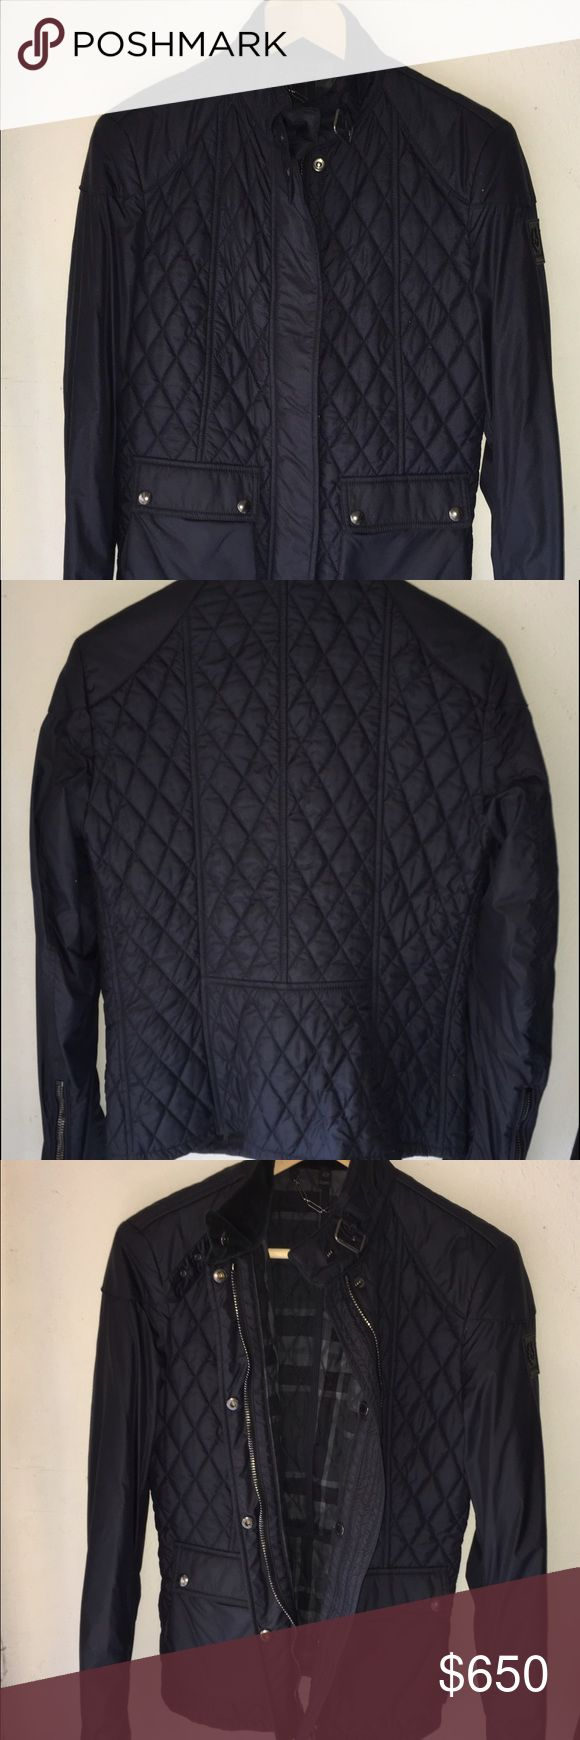 Belstaff quilted Jacket Authentic Belstaff jacket. Black quilted. Size small. Fast shipping. Excellent condition. Belstaff Jackets & Coats Utility Jackets